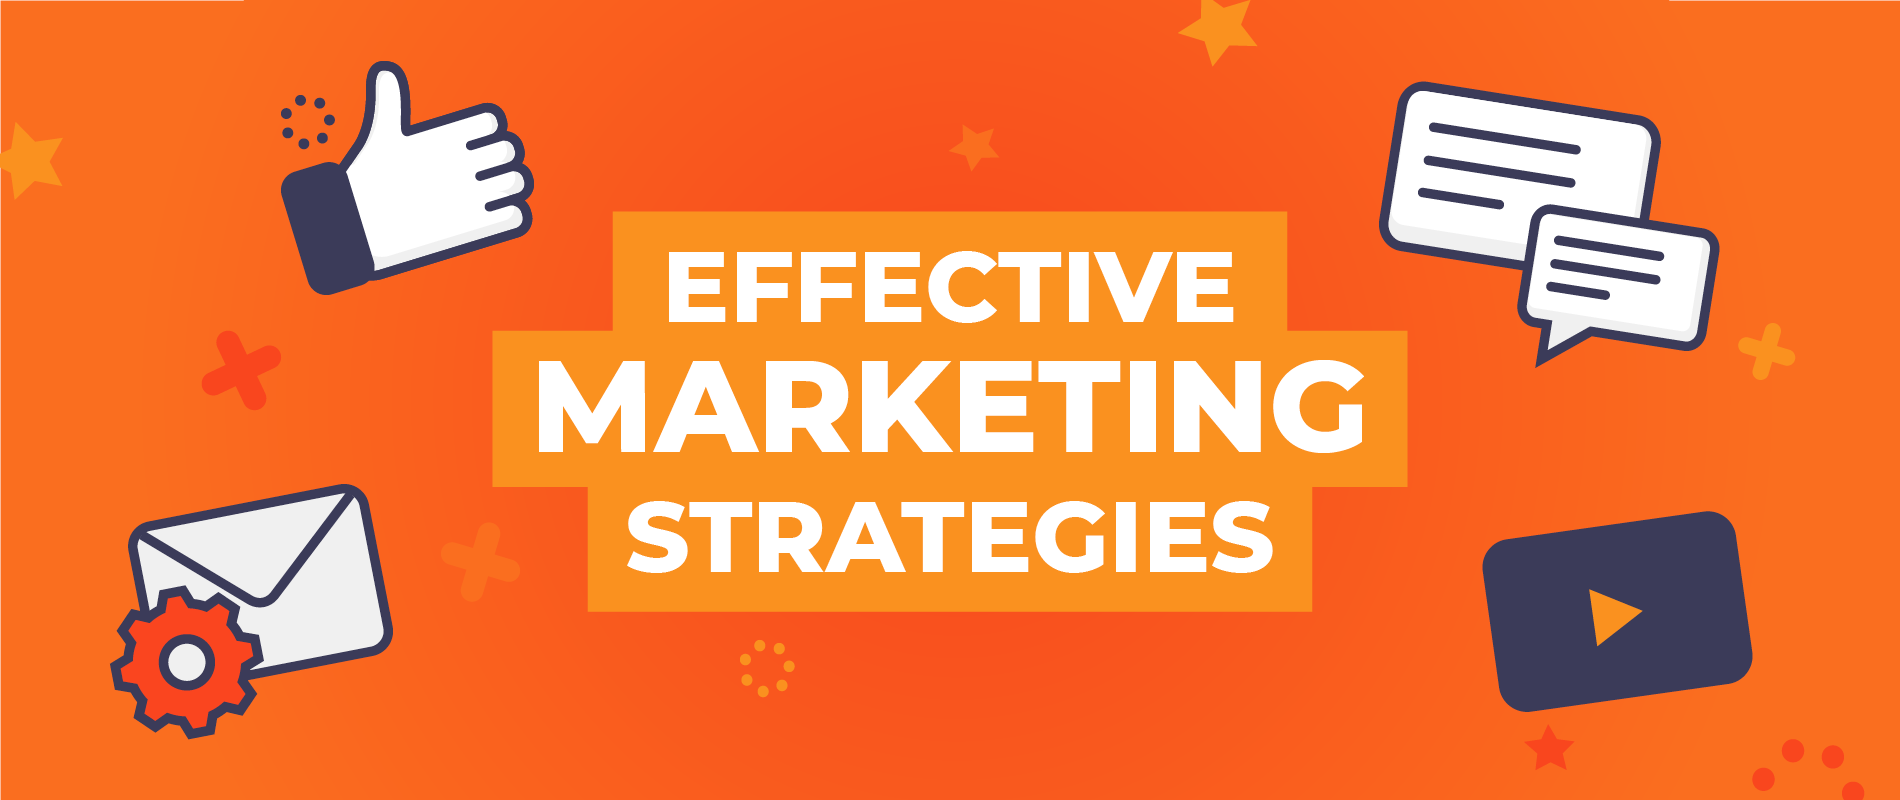 4 Highly Effective SaaS Marketing Strategy Examples